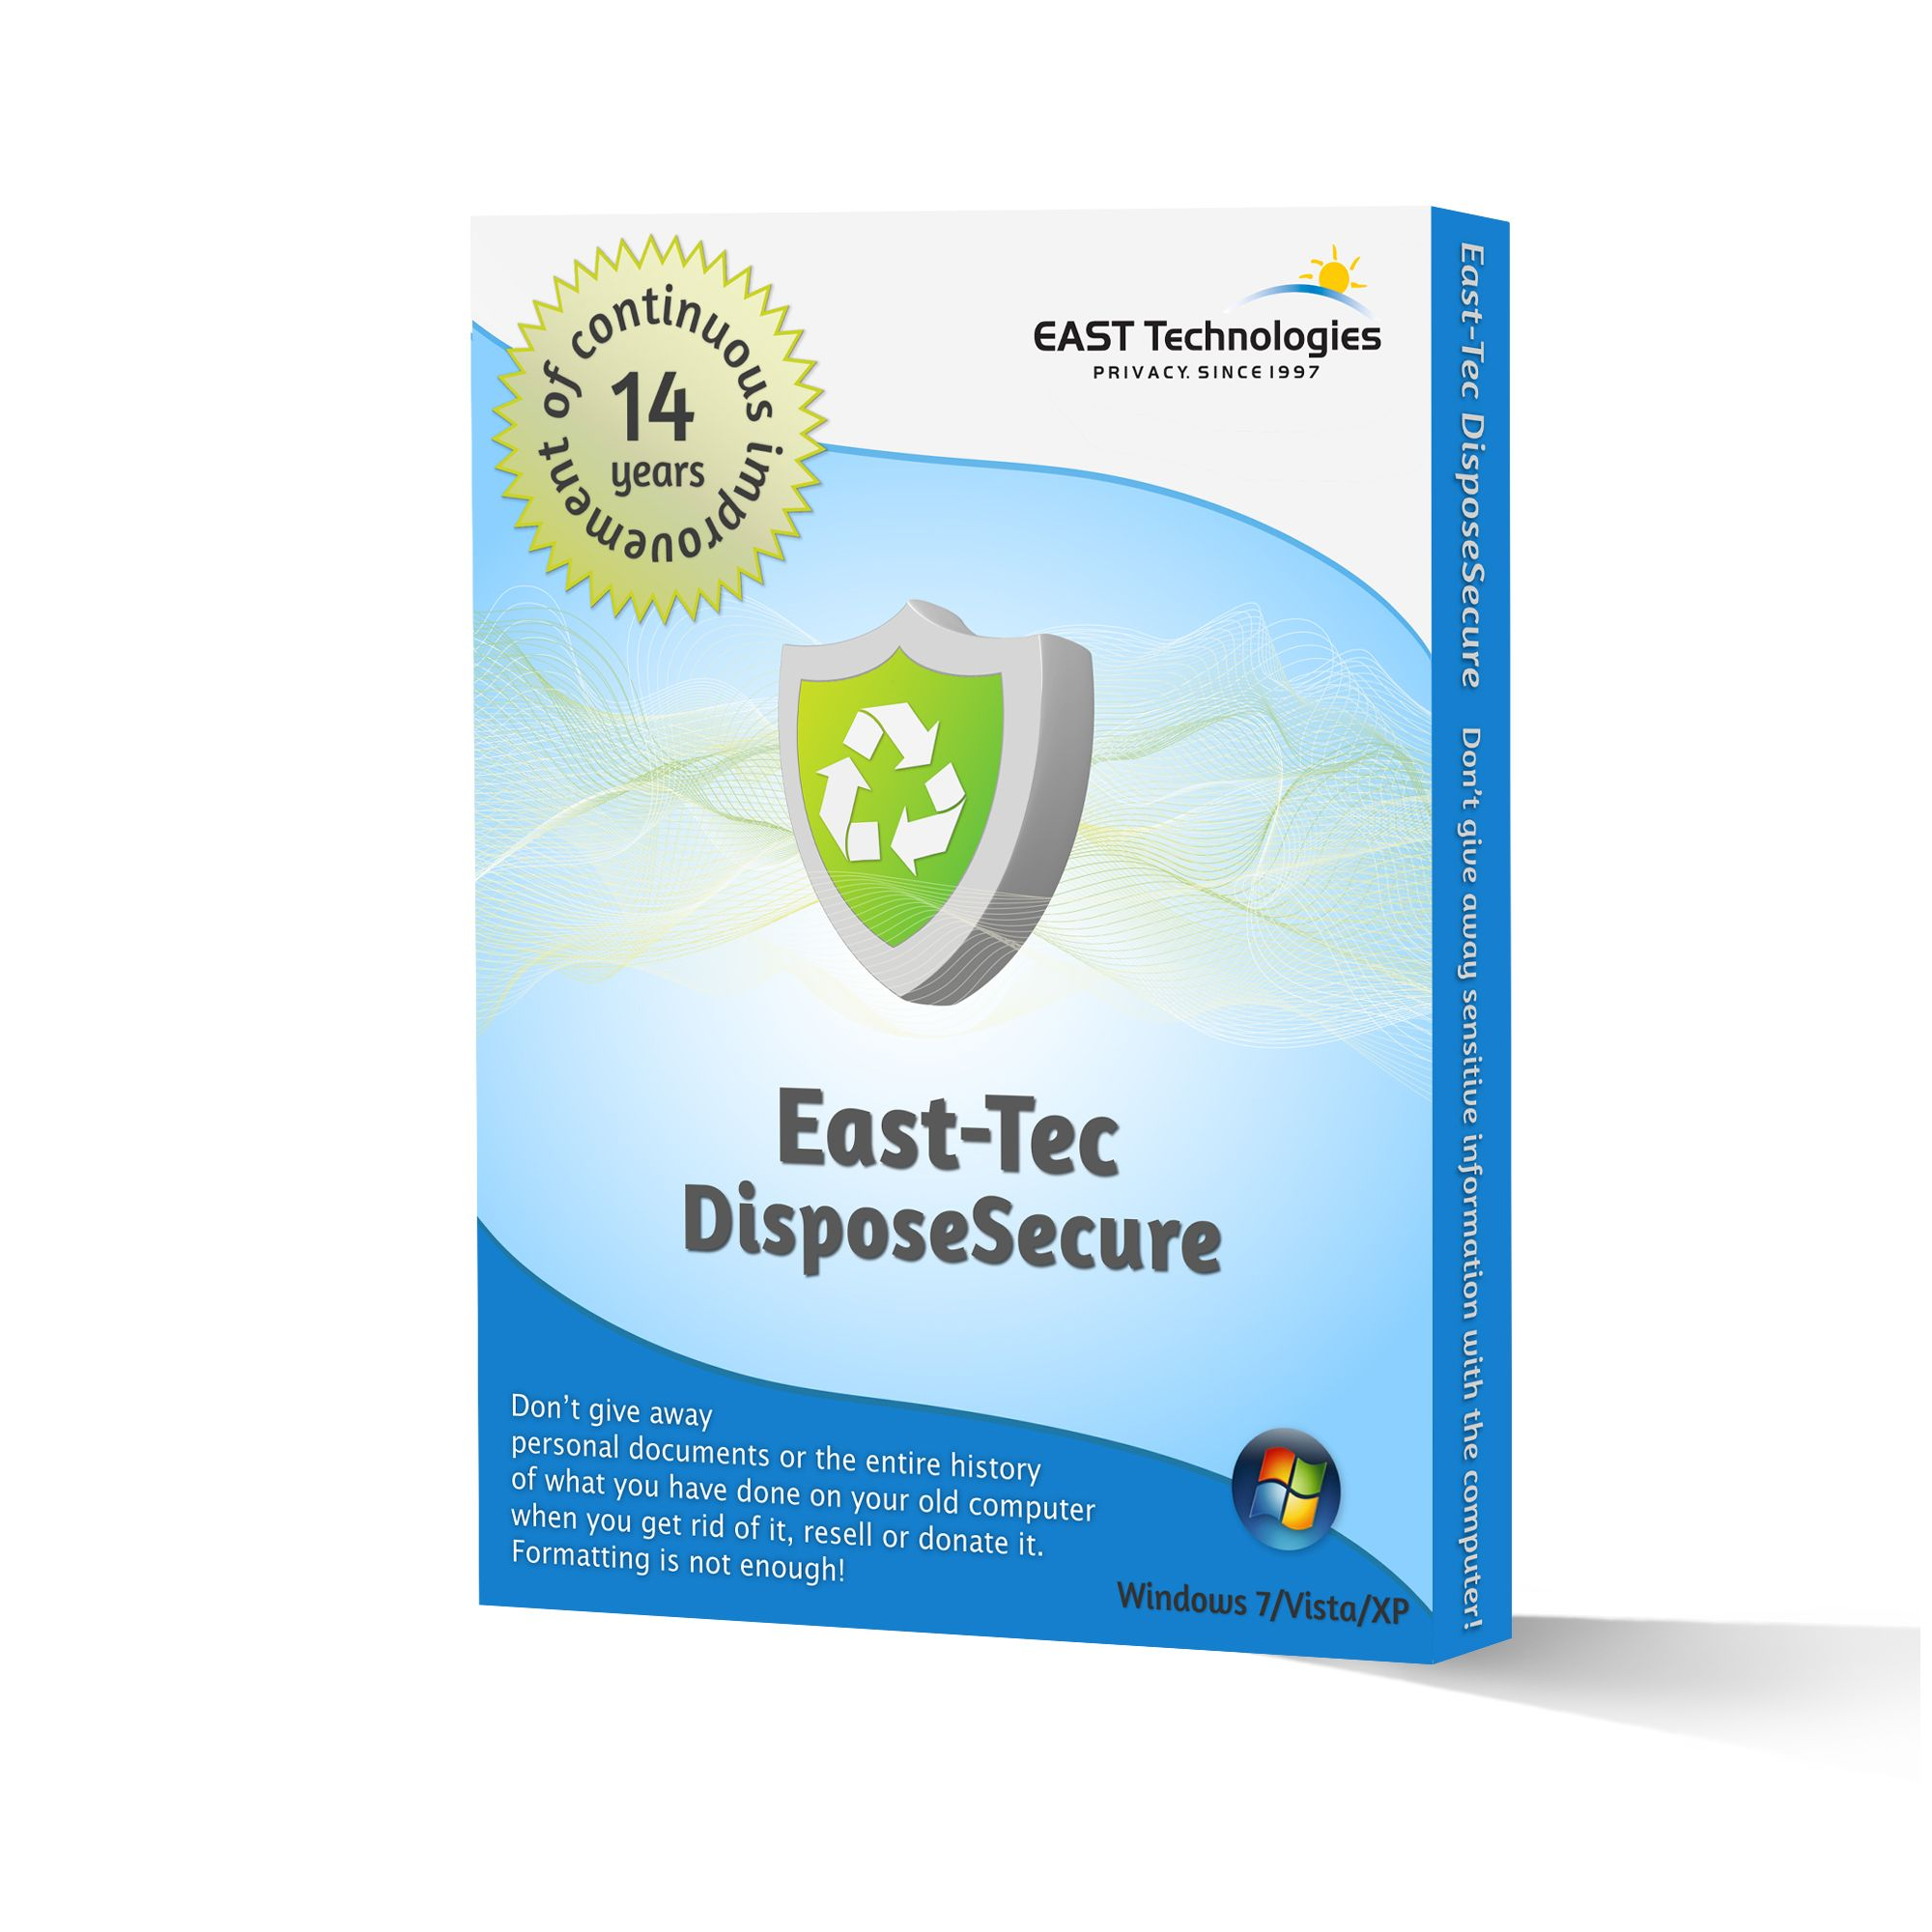 East-Tec DisposeSecure 4.2 serial key or number